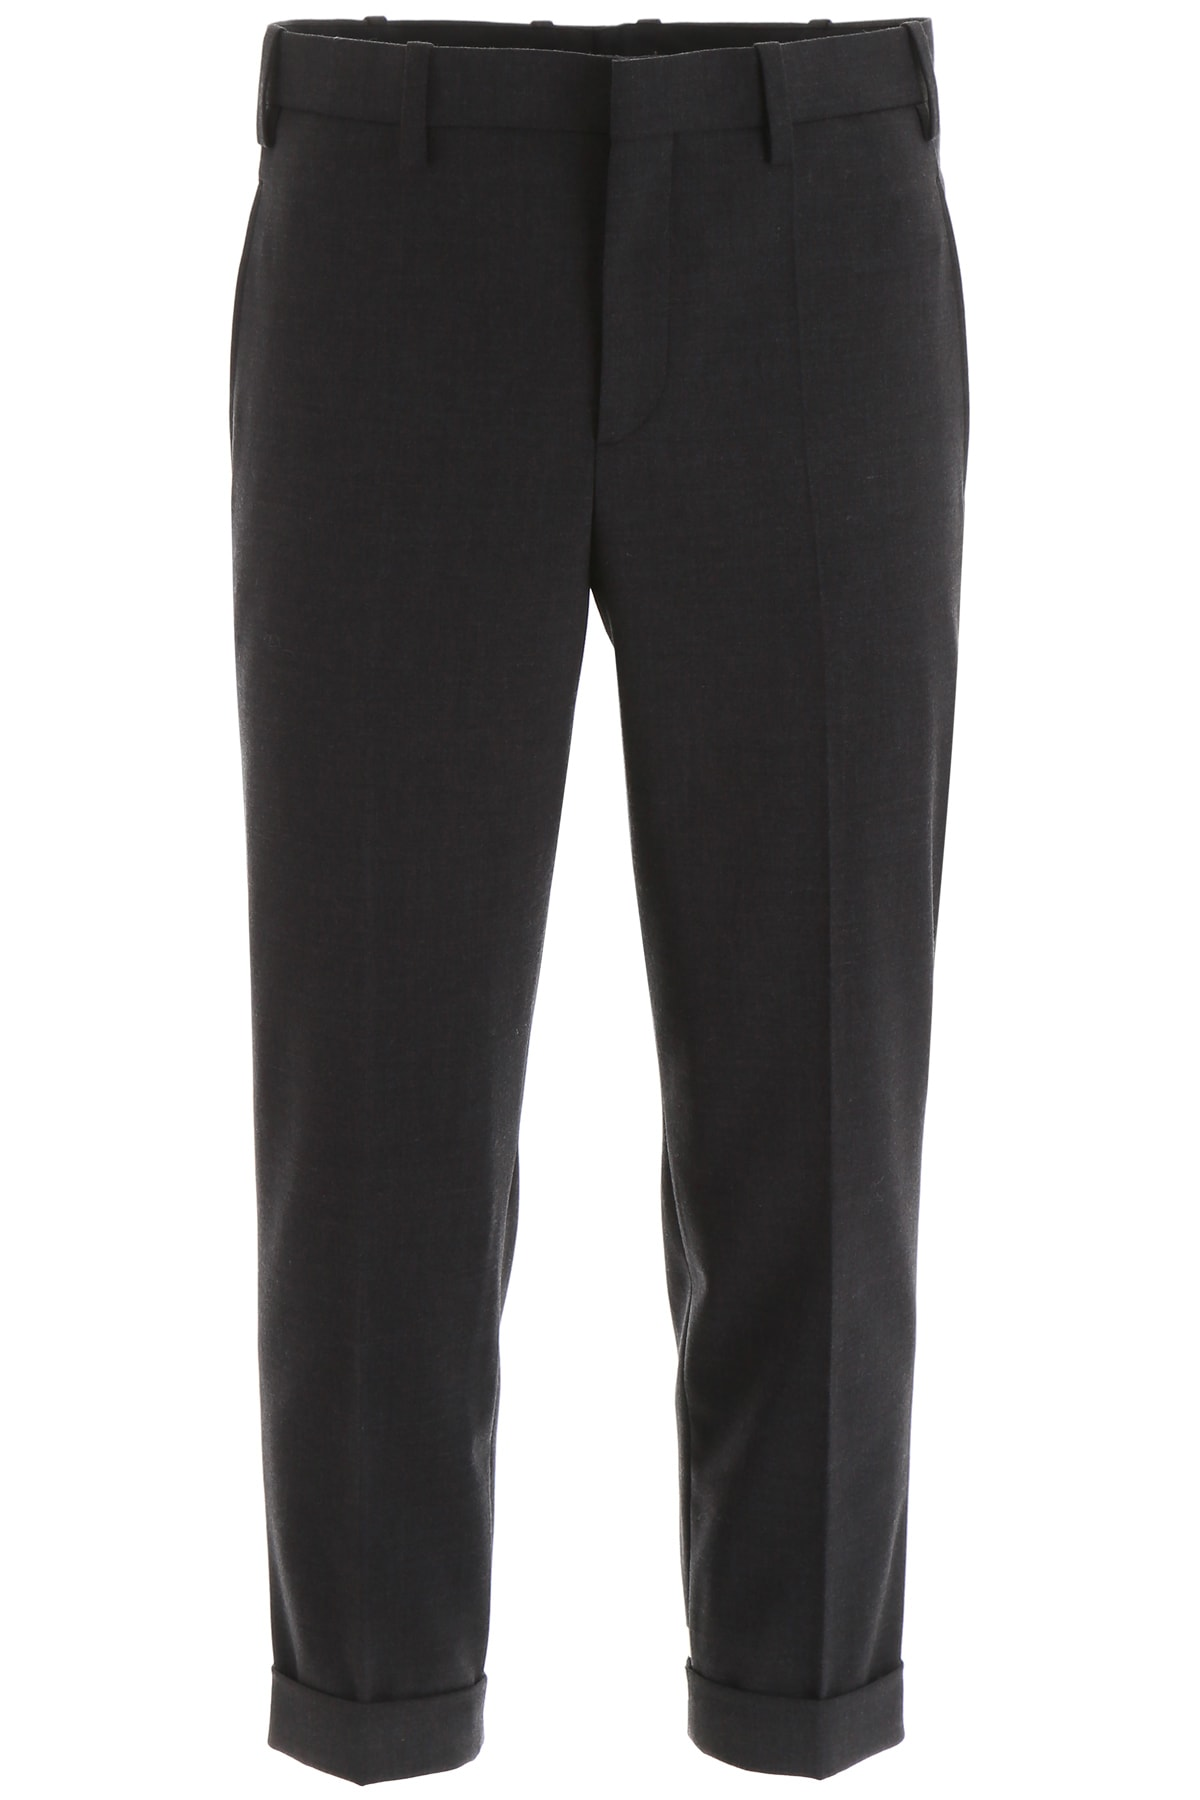 Neil Barrett Trousers With Double Band